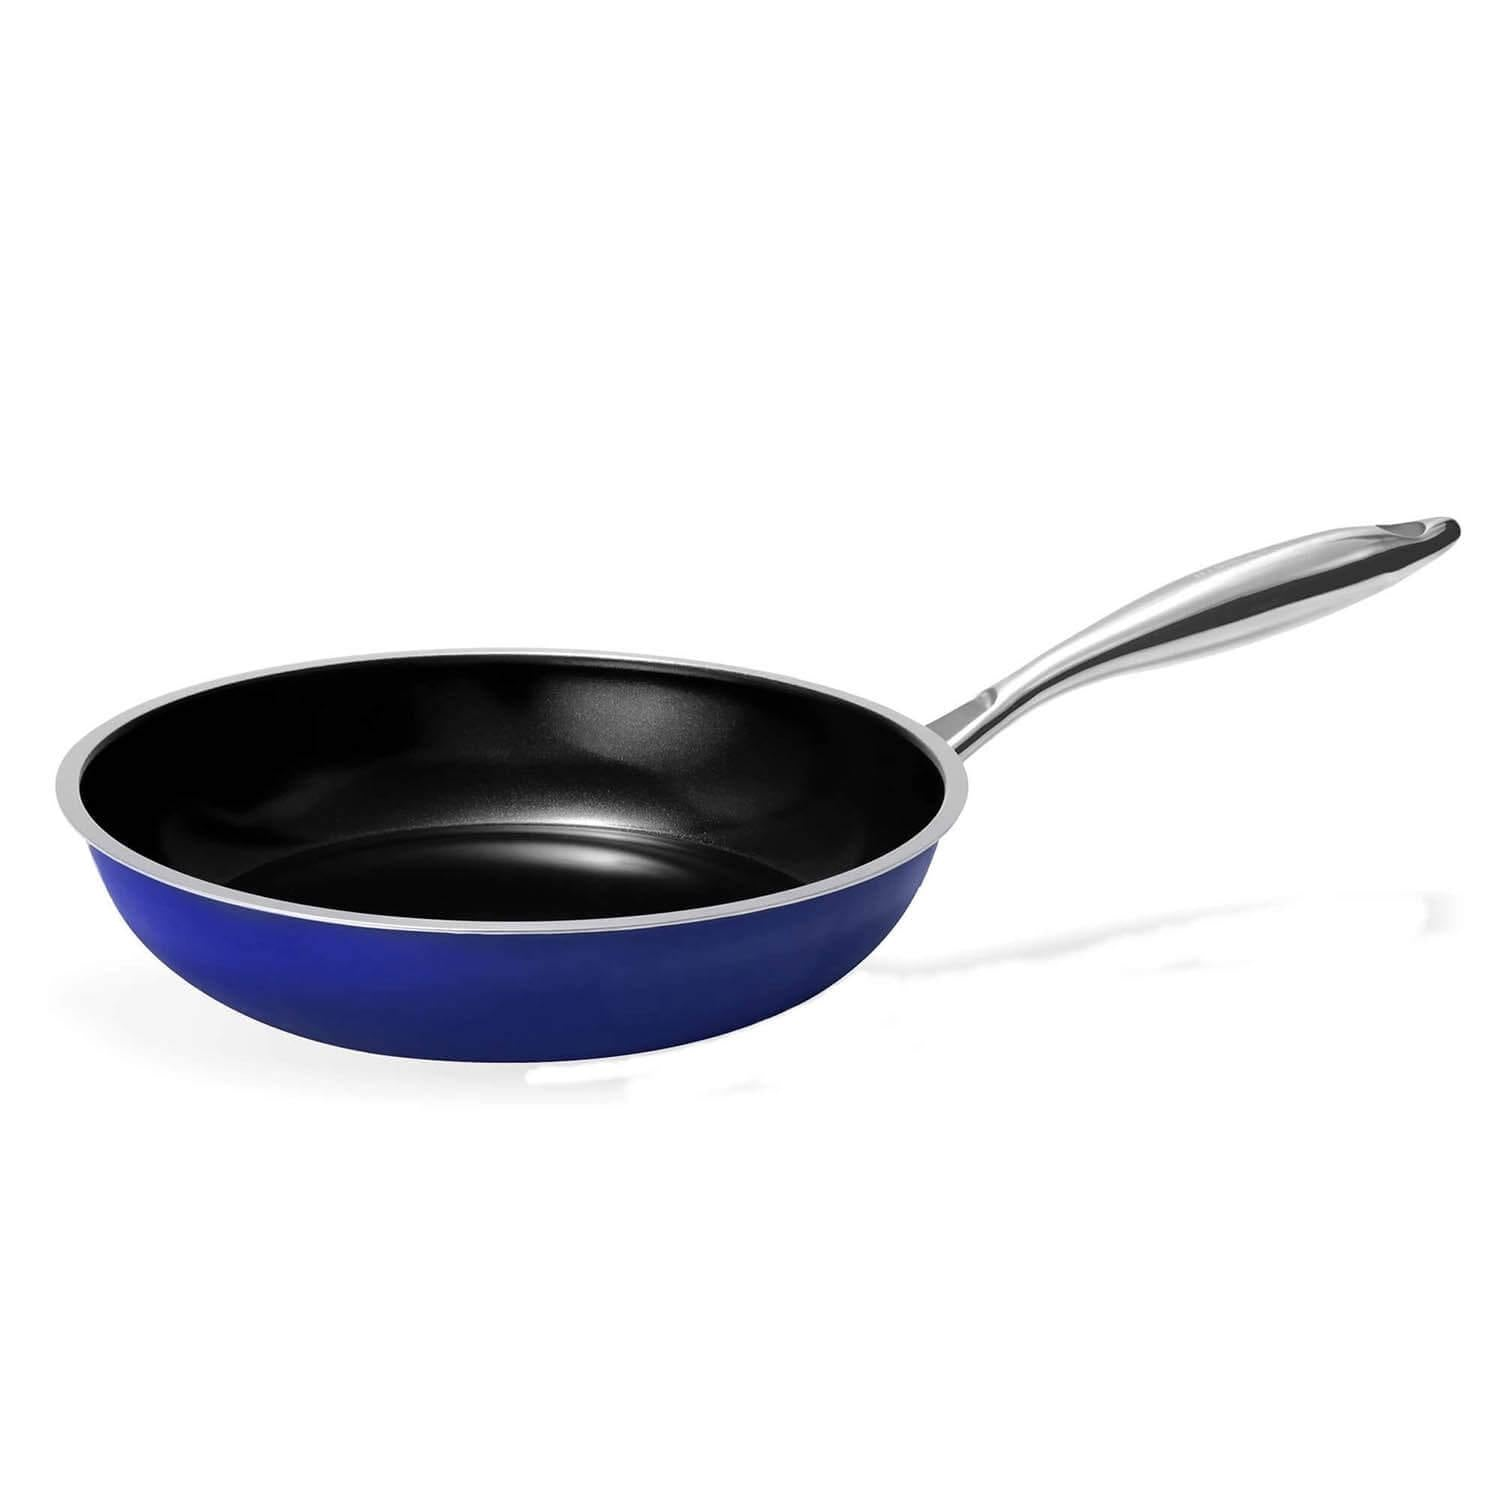 9.5 inch Enameled Non Stick Skillet Frying Pan